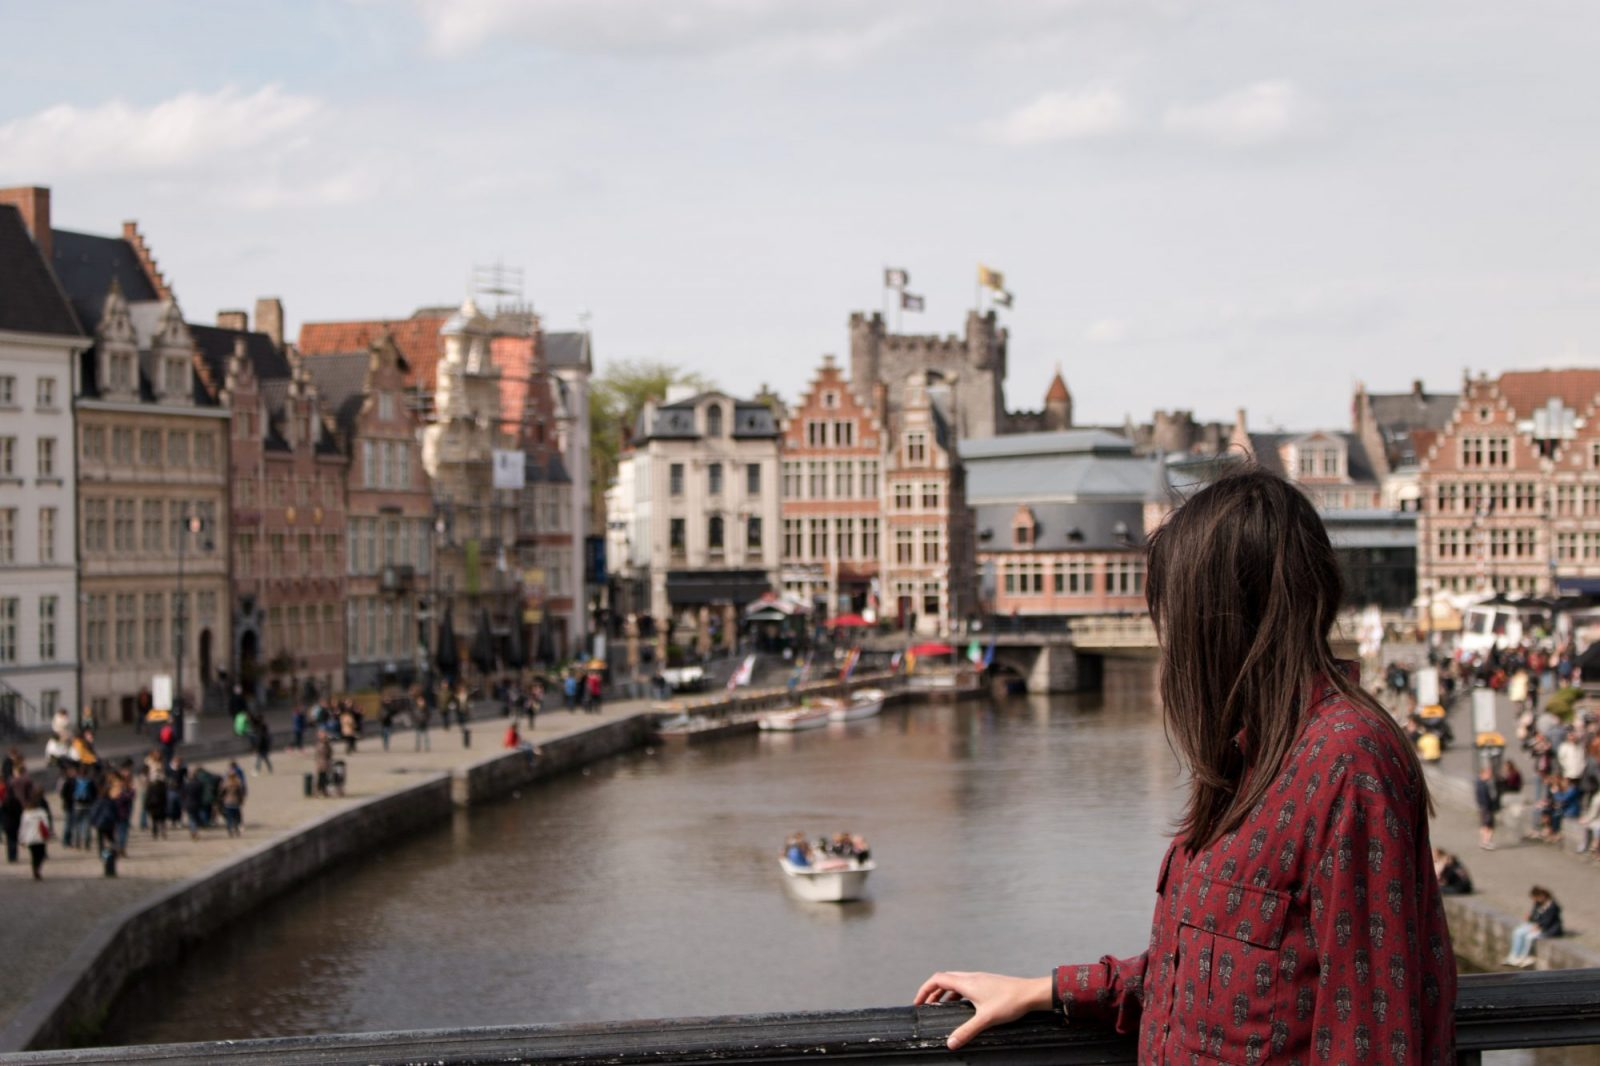 The Best Walking Tours in Amsterdam - Explore on Foot